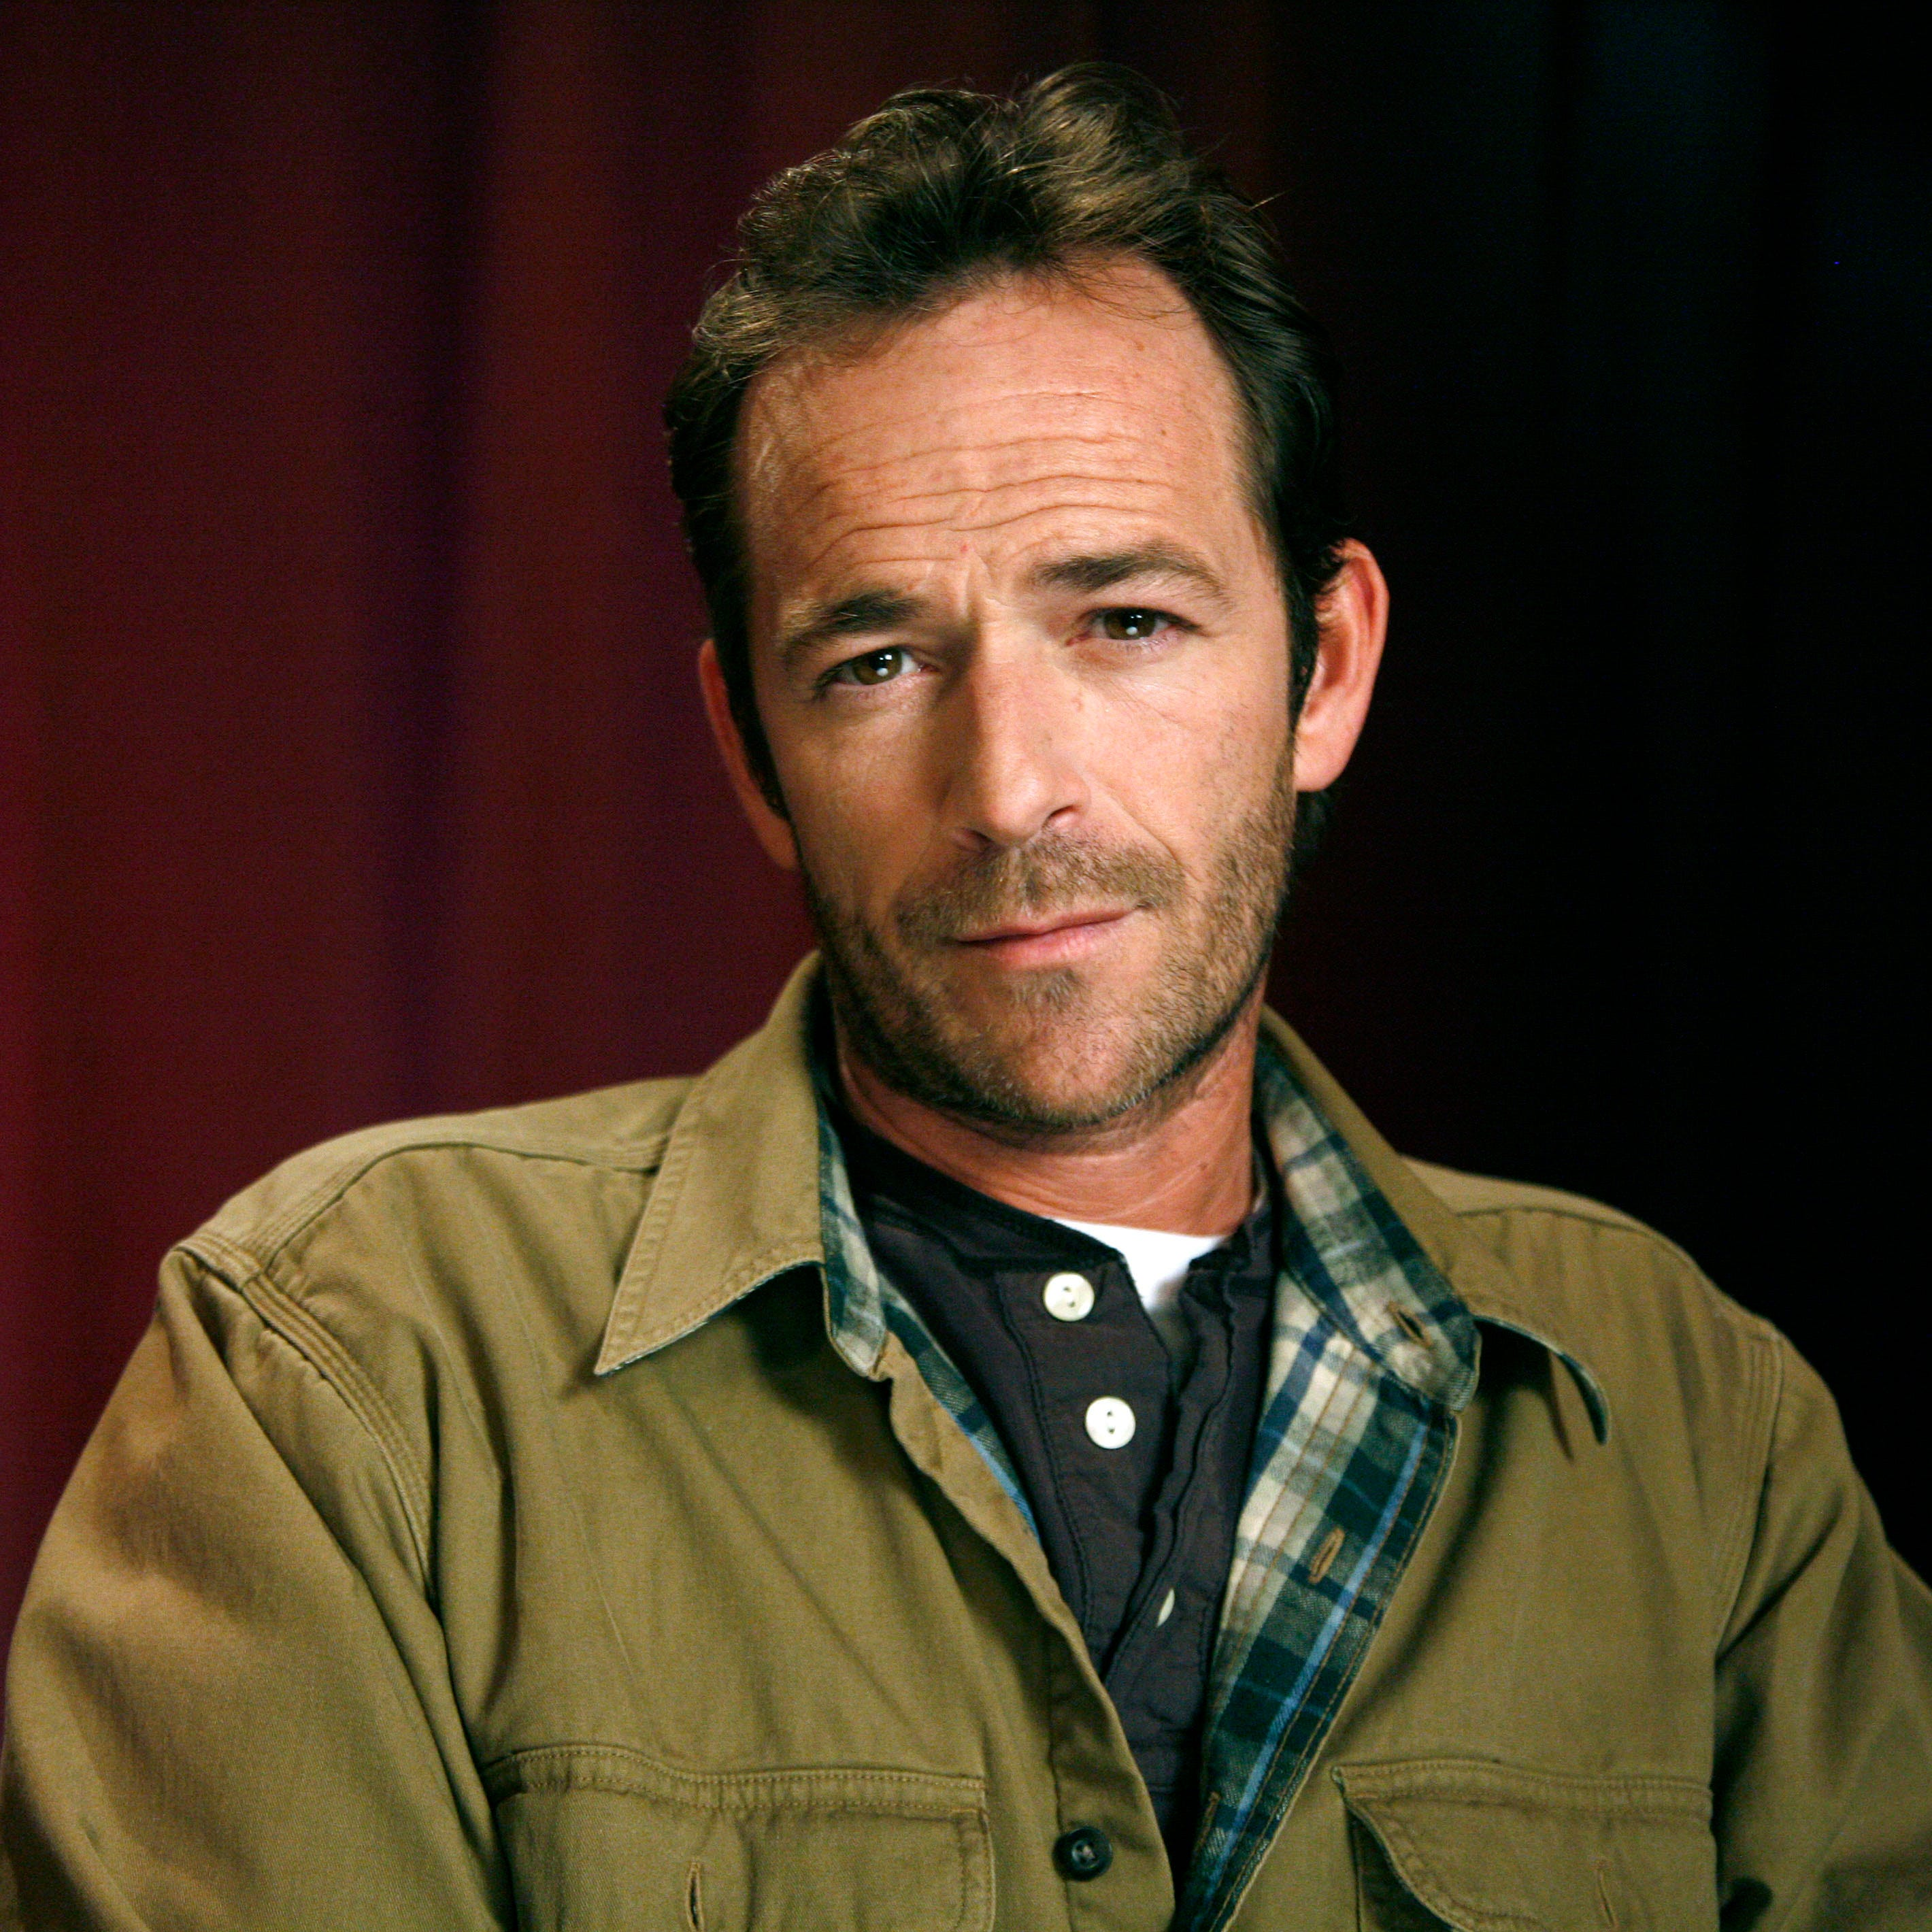 Luke Perry laid to rest near Tennessee home, according to death certificate